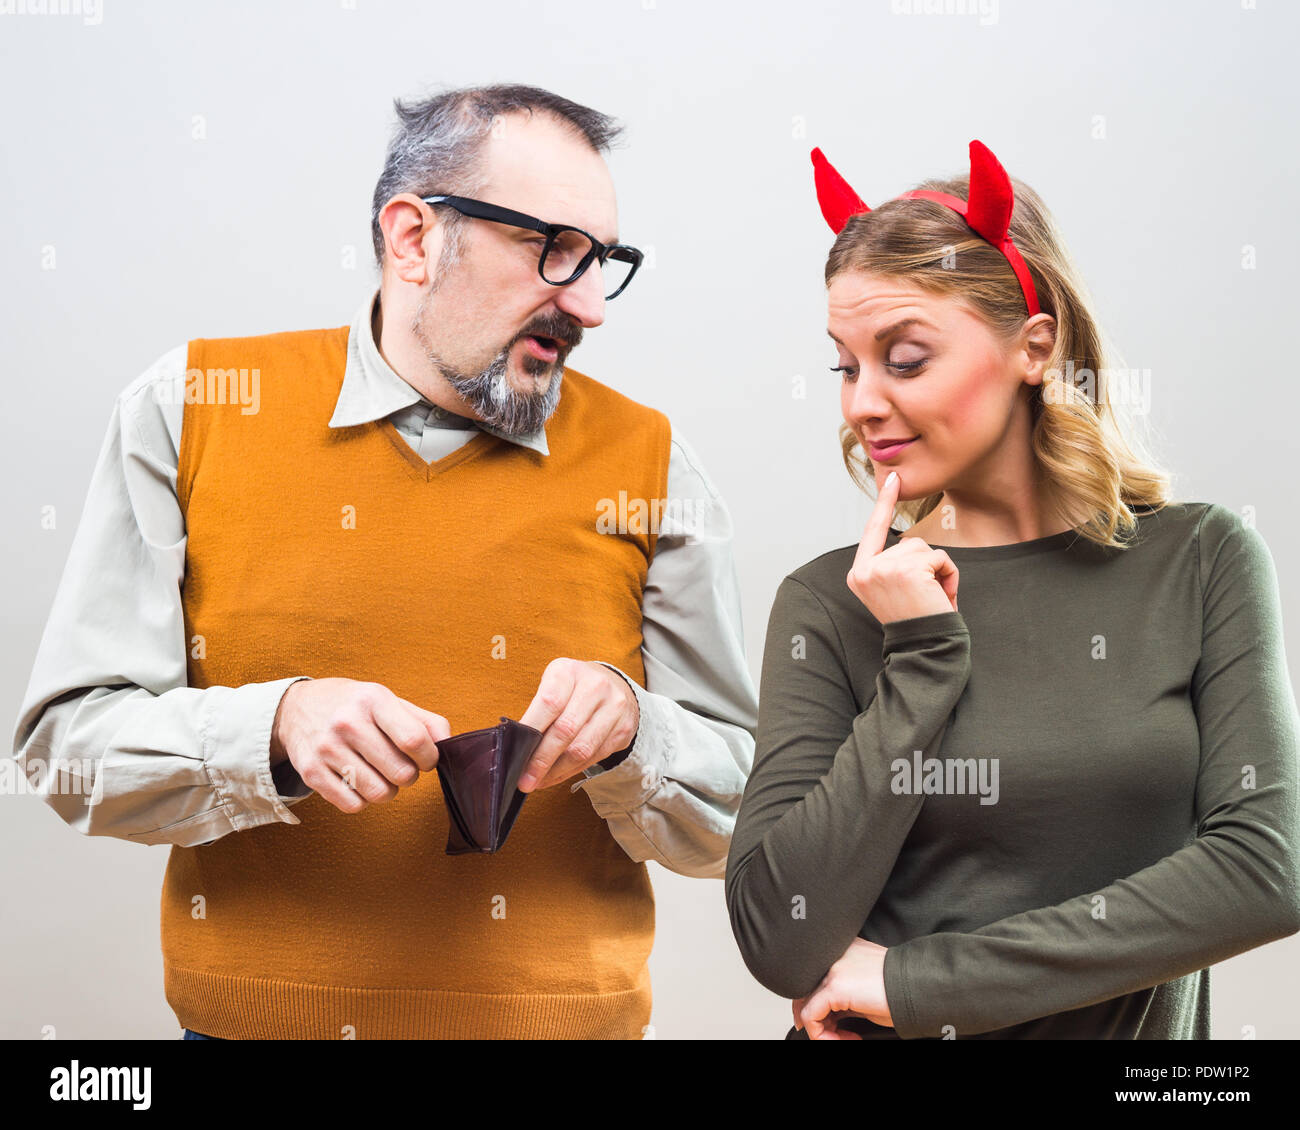 Nerdy man is uncertain,he is thinking does his wife love more him or his money. - Stock Image